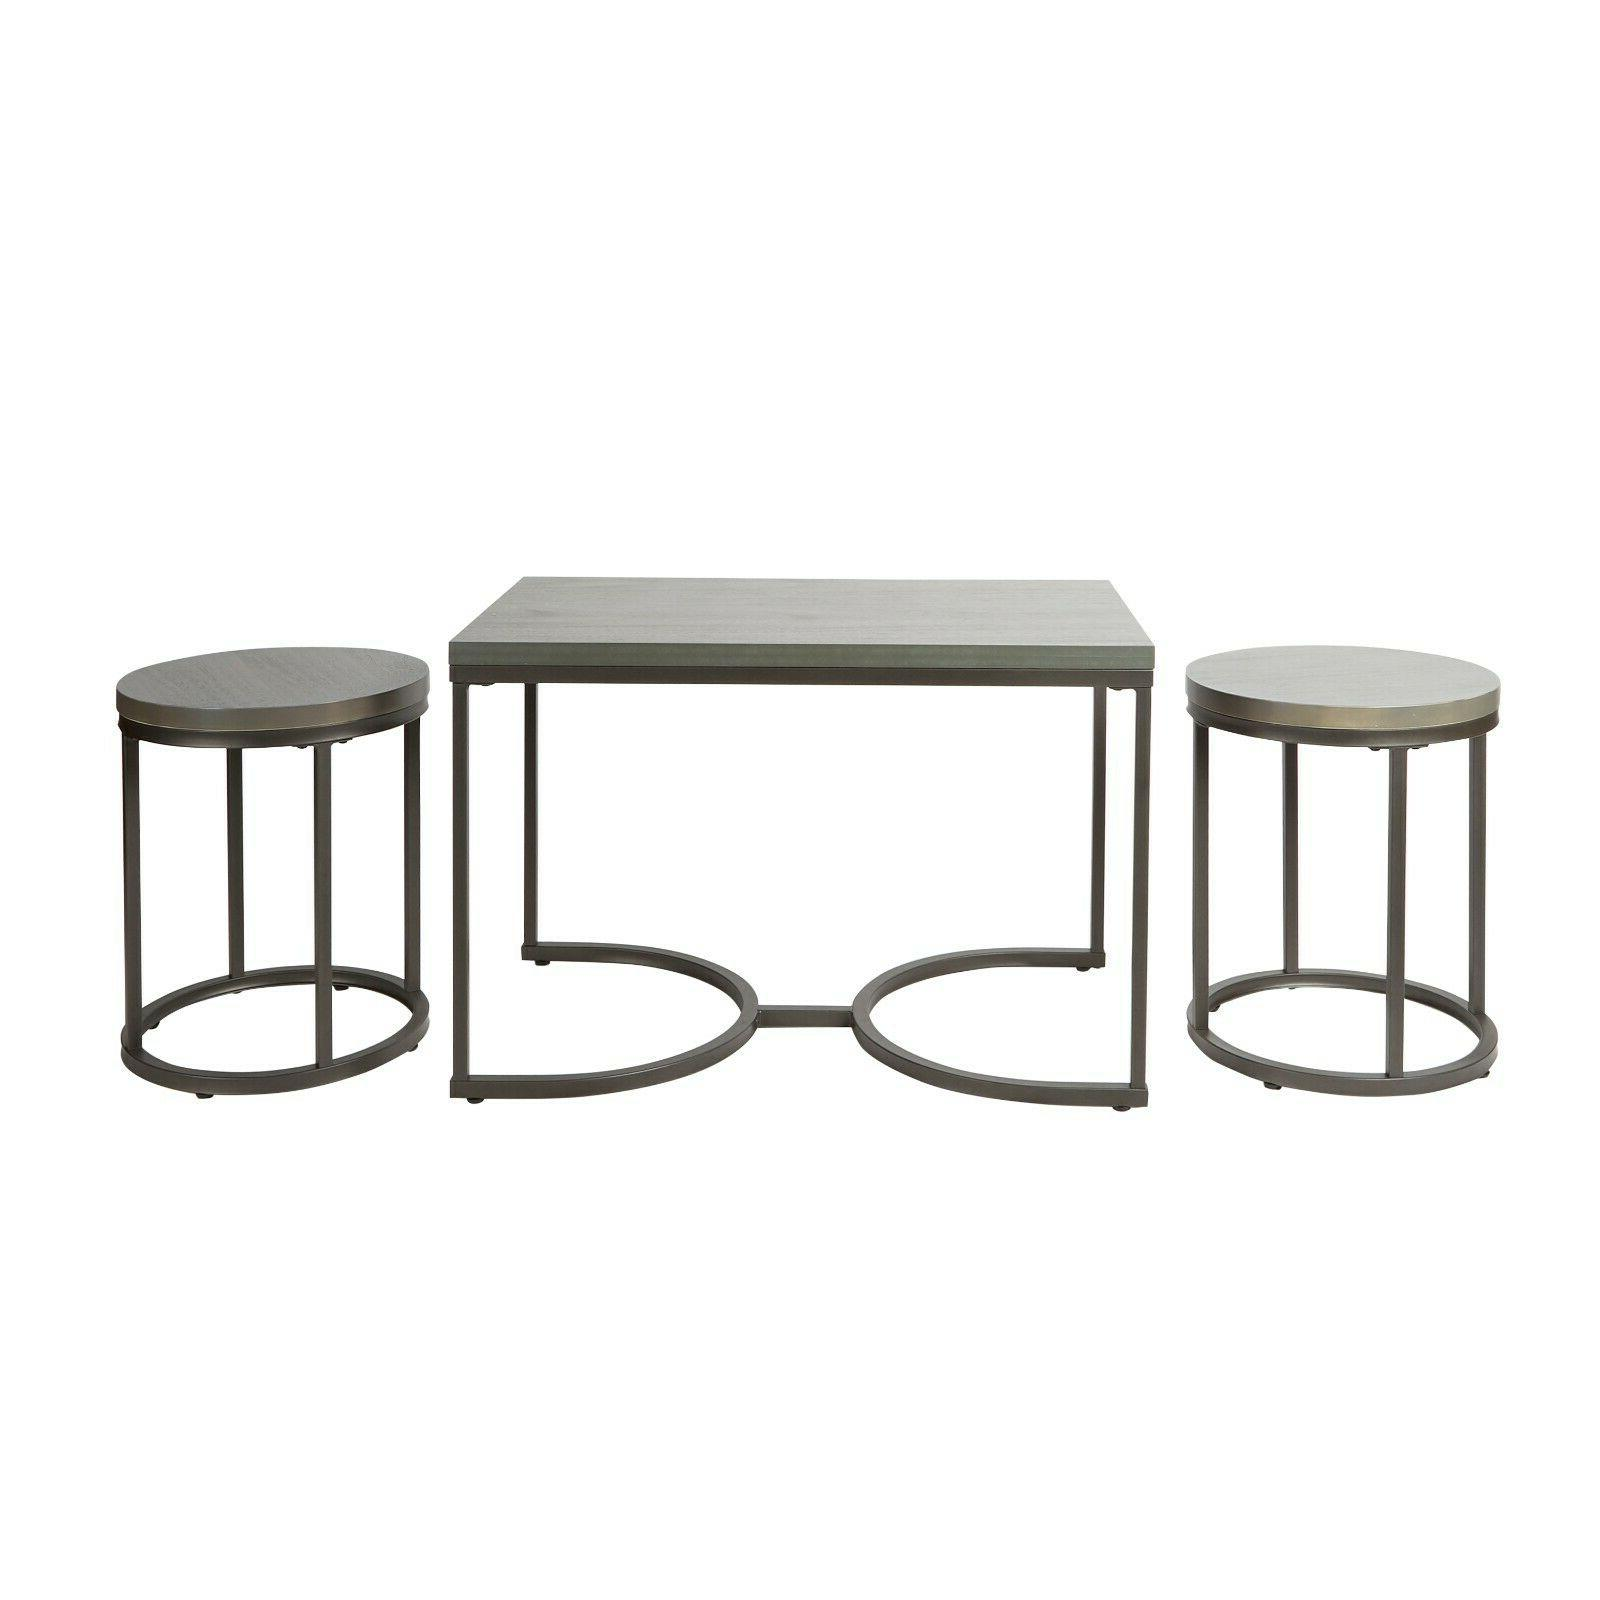 3 coffee set round table table Side Tables